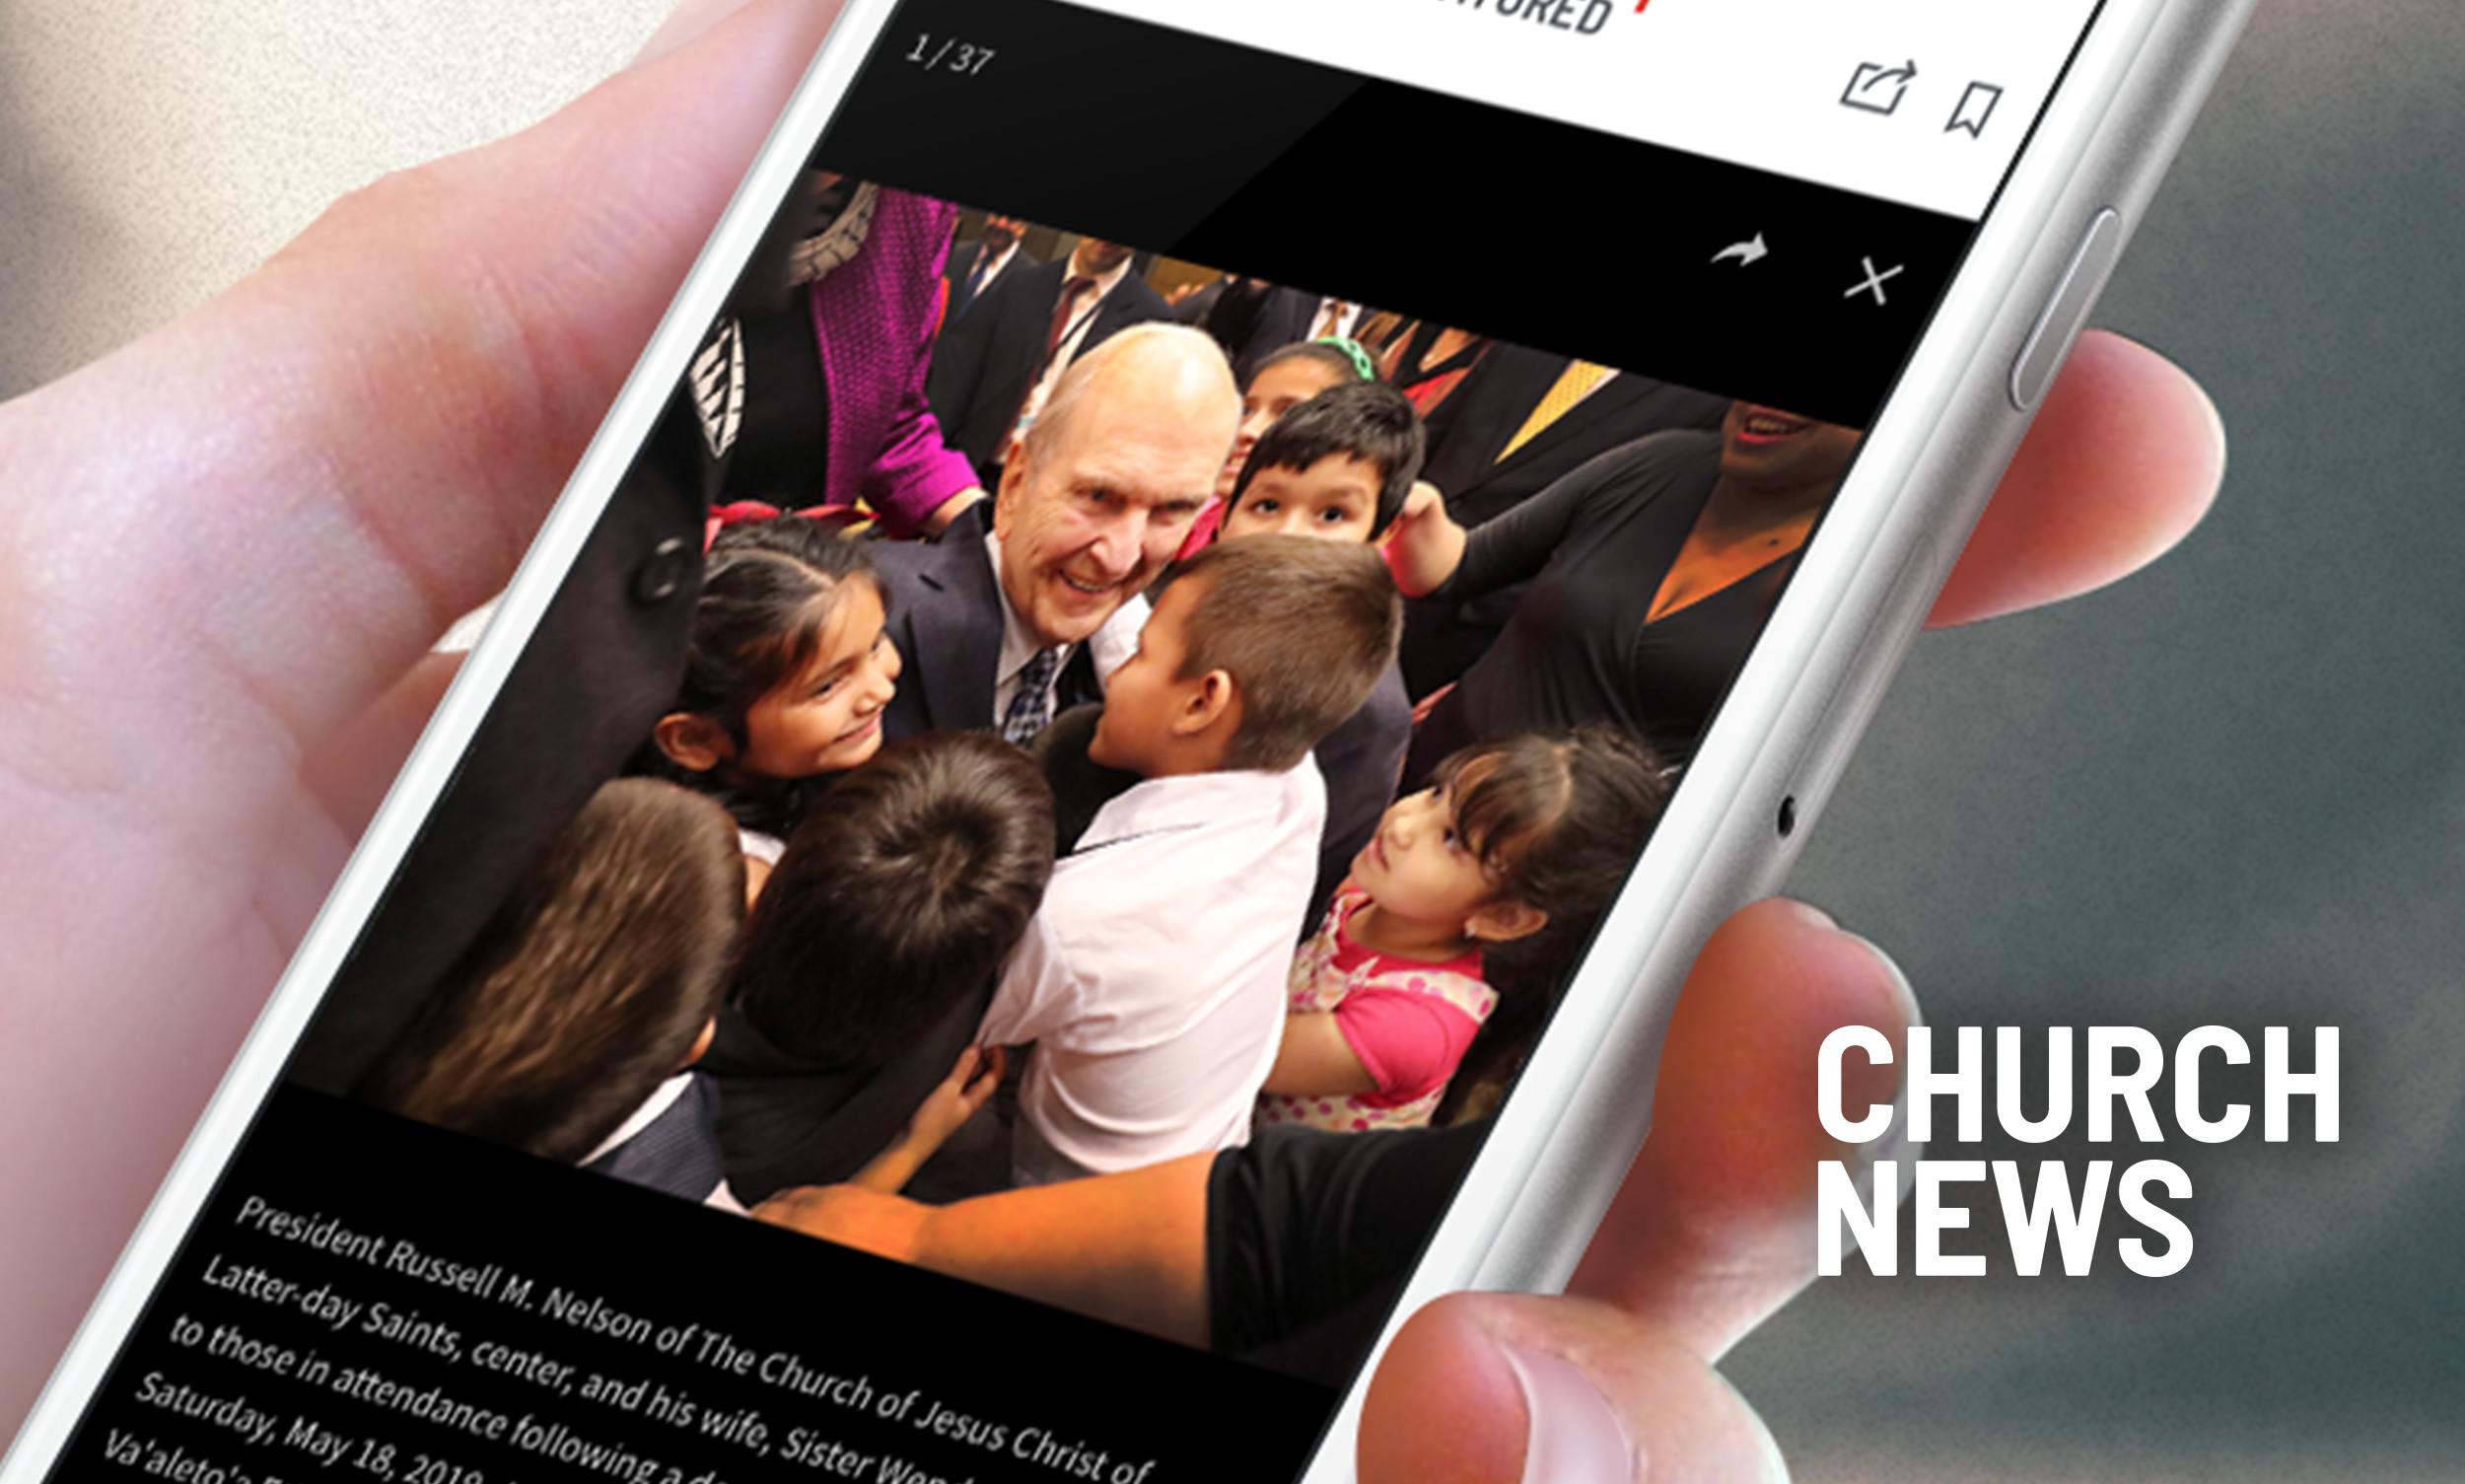 An image of the Church News app.